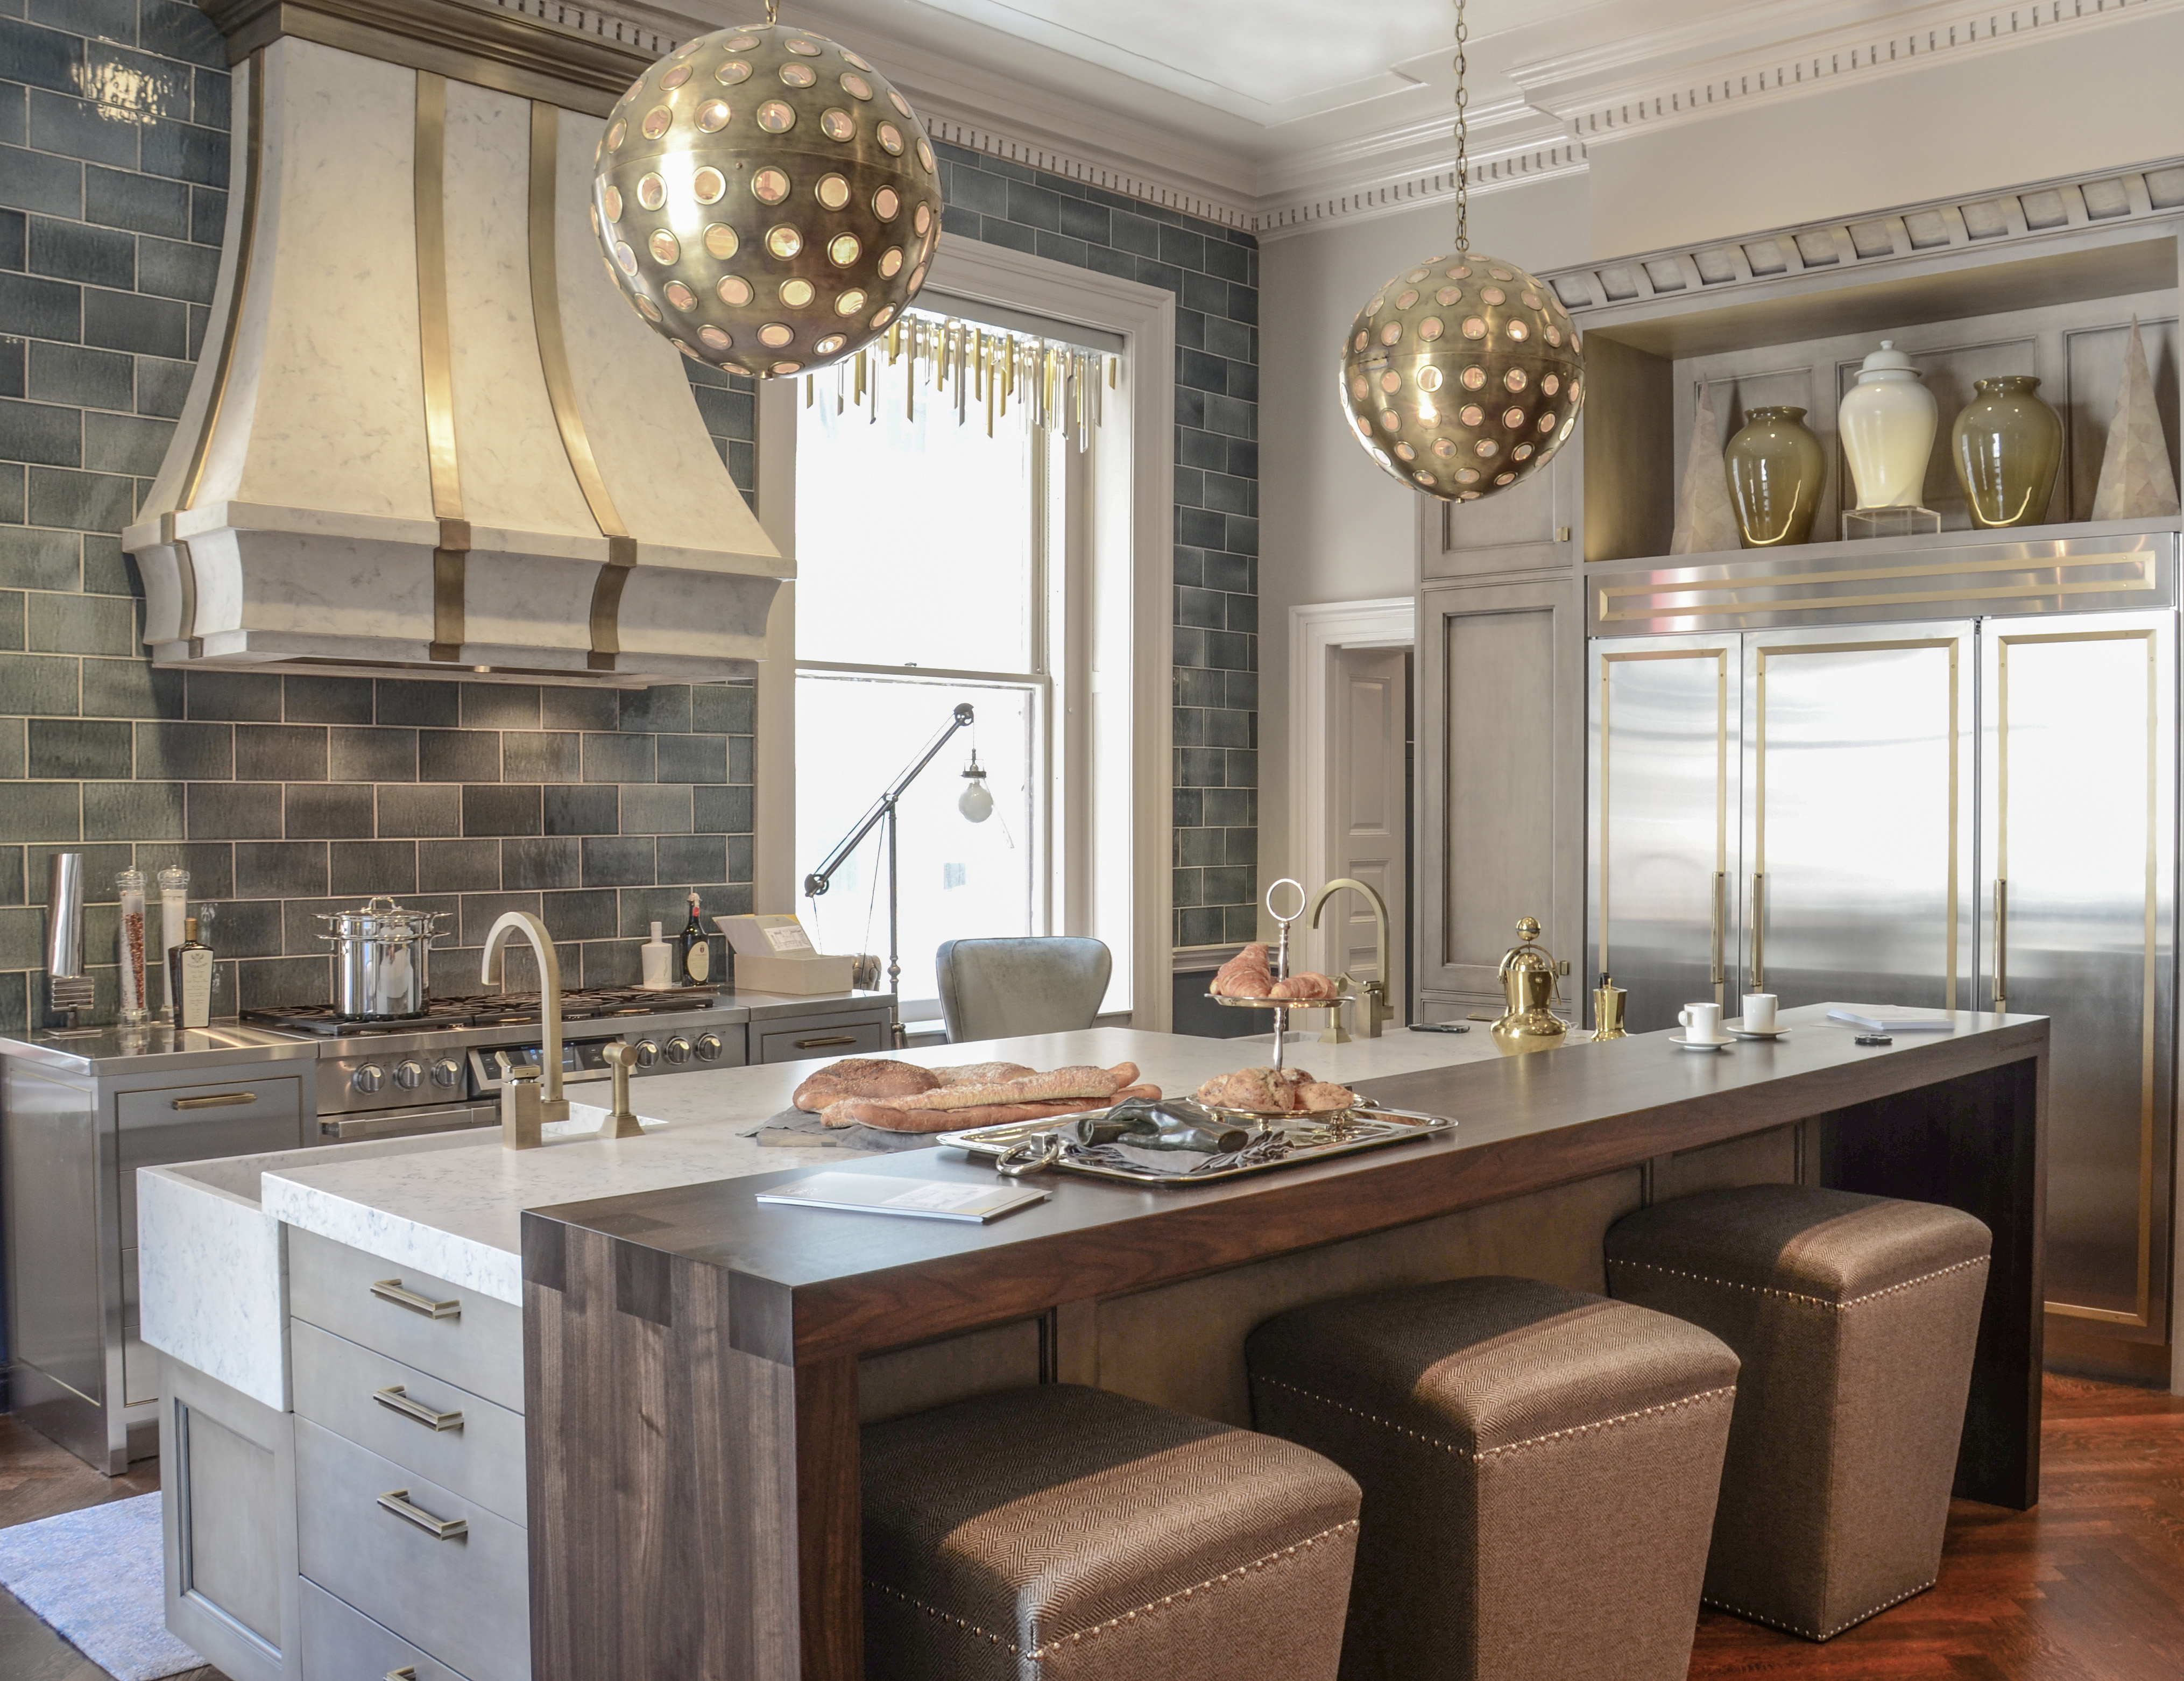 House Beautiful Kitchen of the Month November 2014 designed by Matthew Quinn